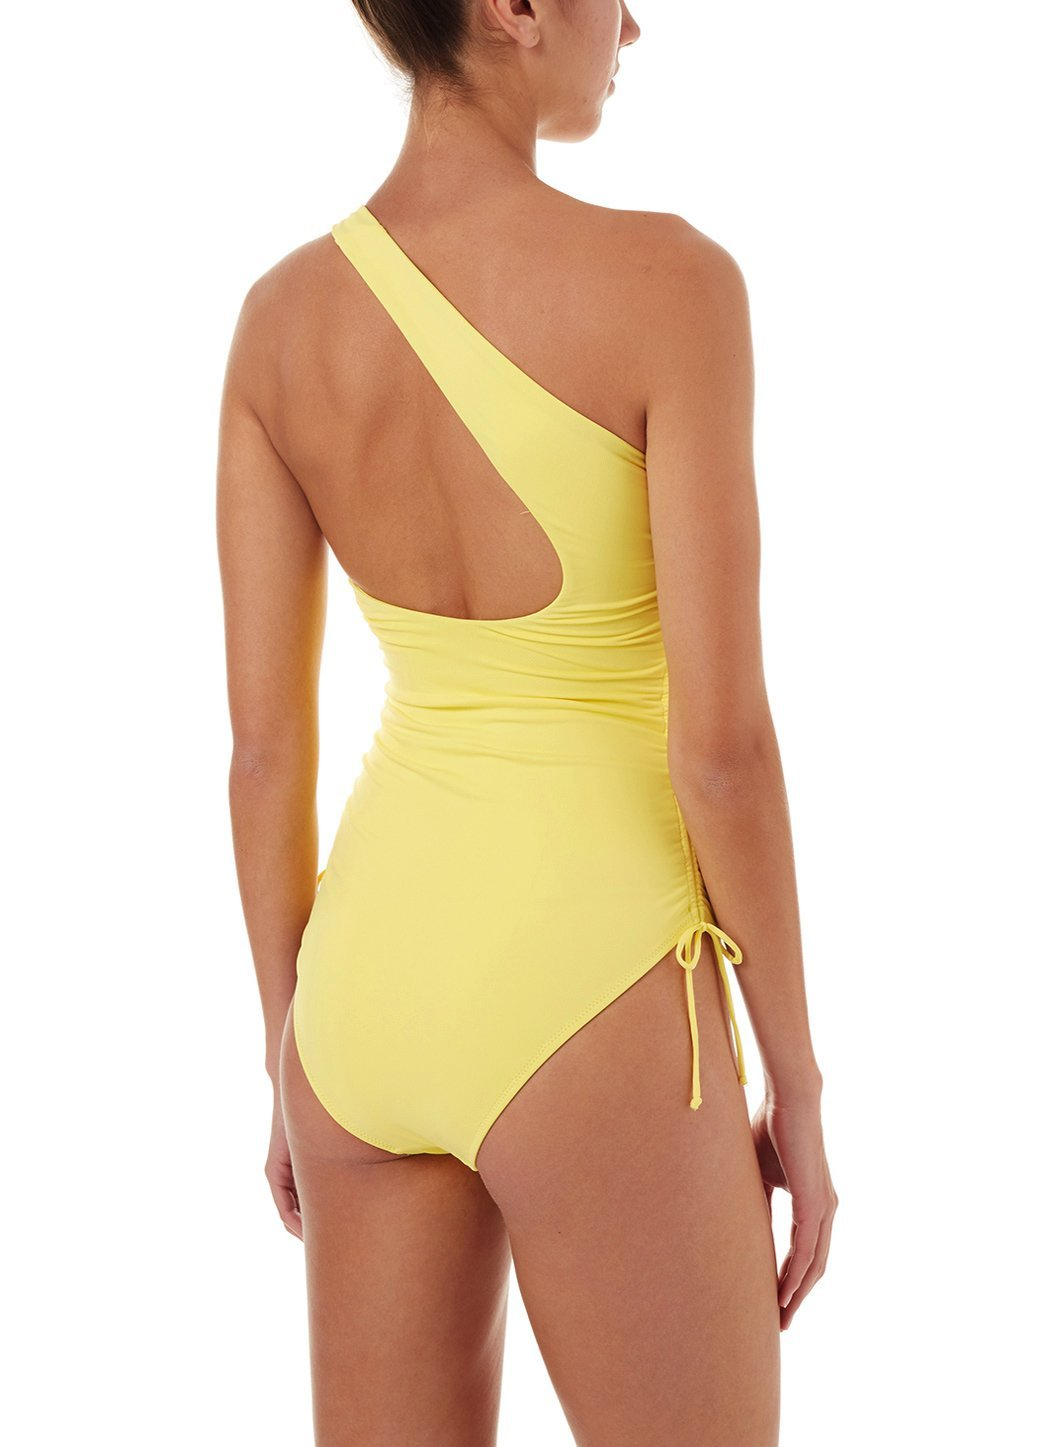 polynesia yellow oneshoulder ruched onepiece swimsuit 2019 B